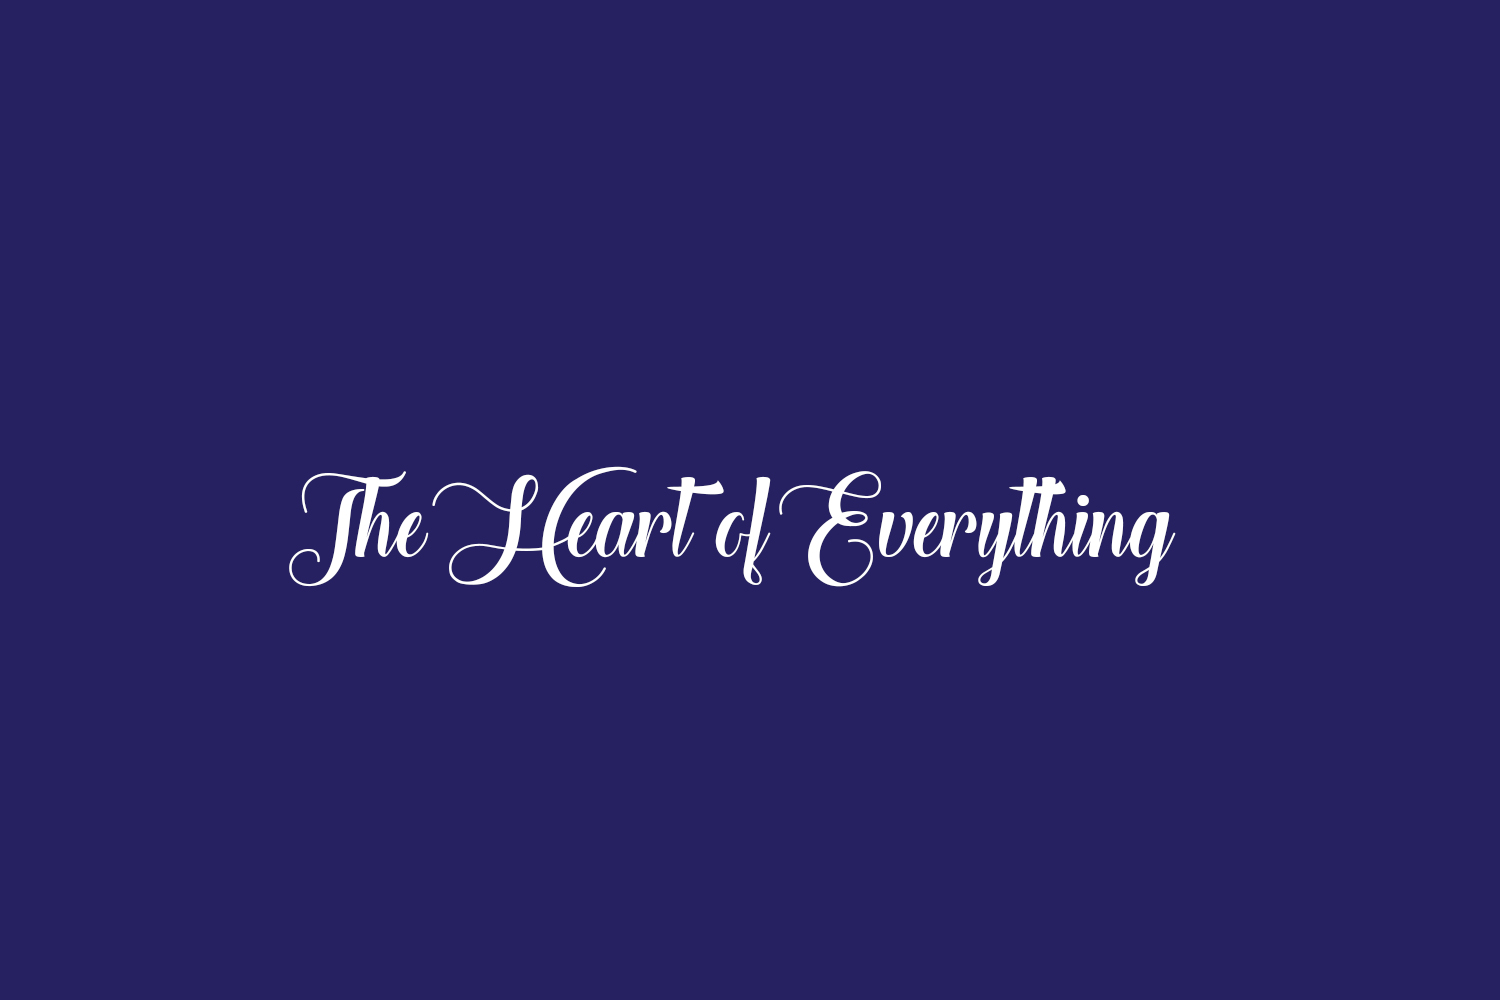 The Heart of Everything Free Font